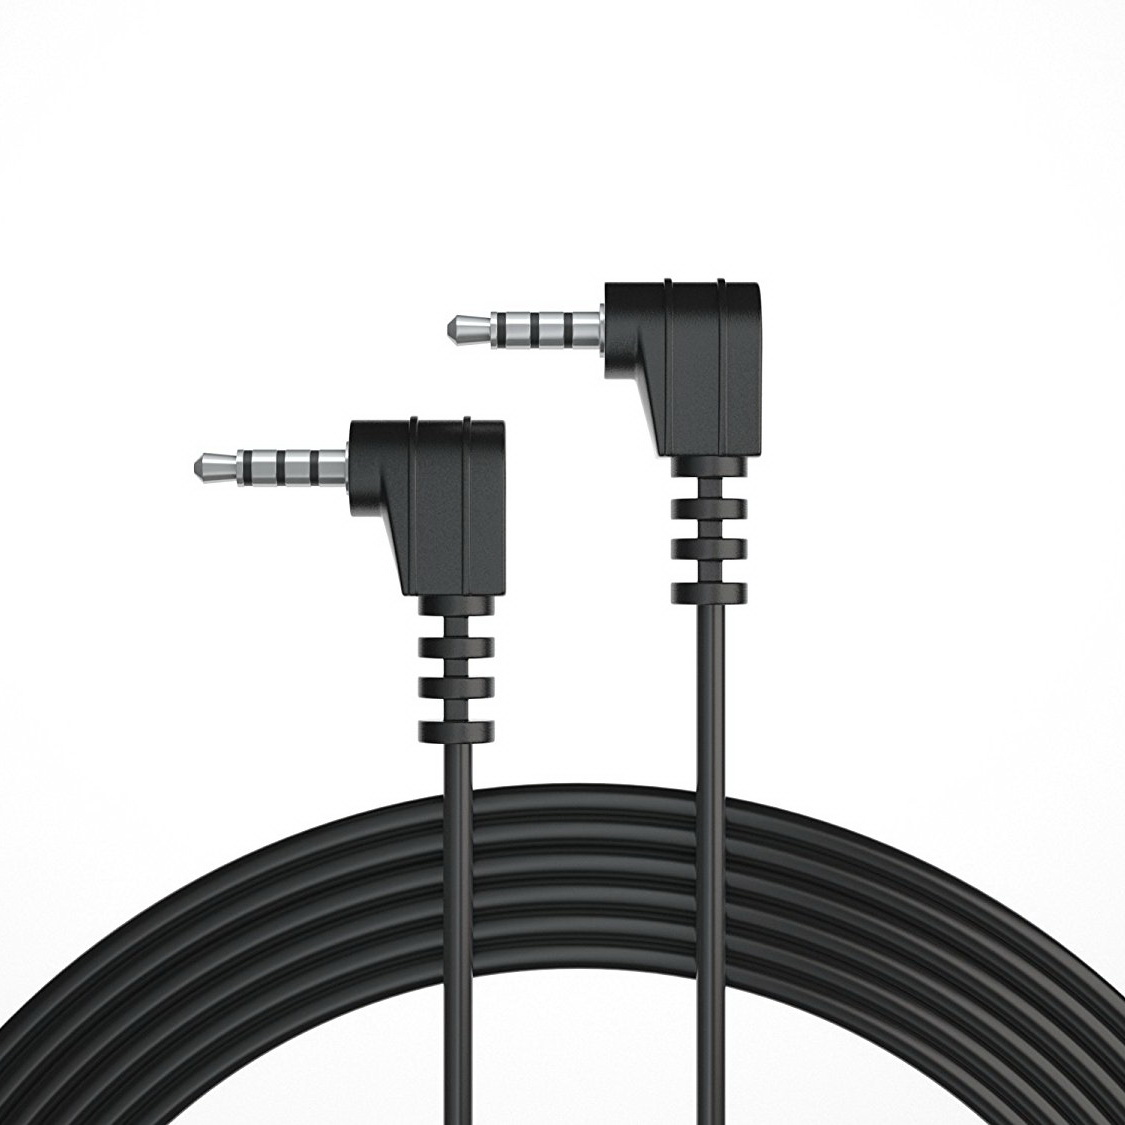 Pwr+ 3.5mm Audio-Video Cable